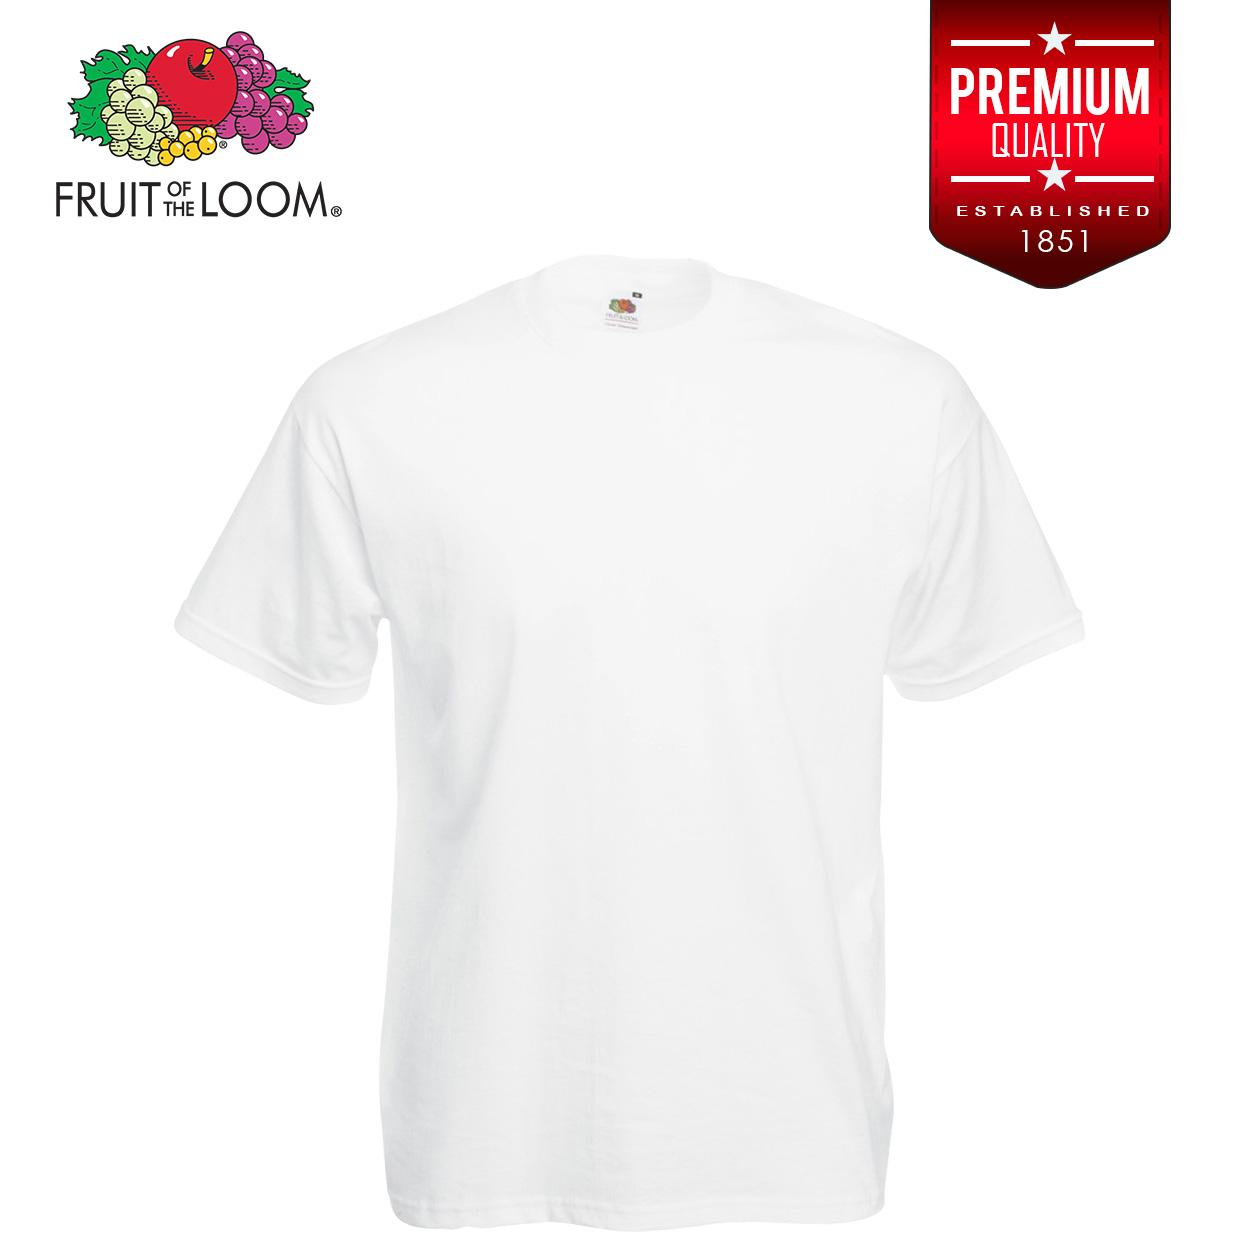 79abe5611ef7 Product details of Fruit of the Loom Soft Premium T Shirt tshirt plain tee  tees Mens t shirt shirts for men tshirts t-shirts sale plain top White